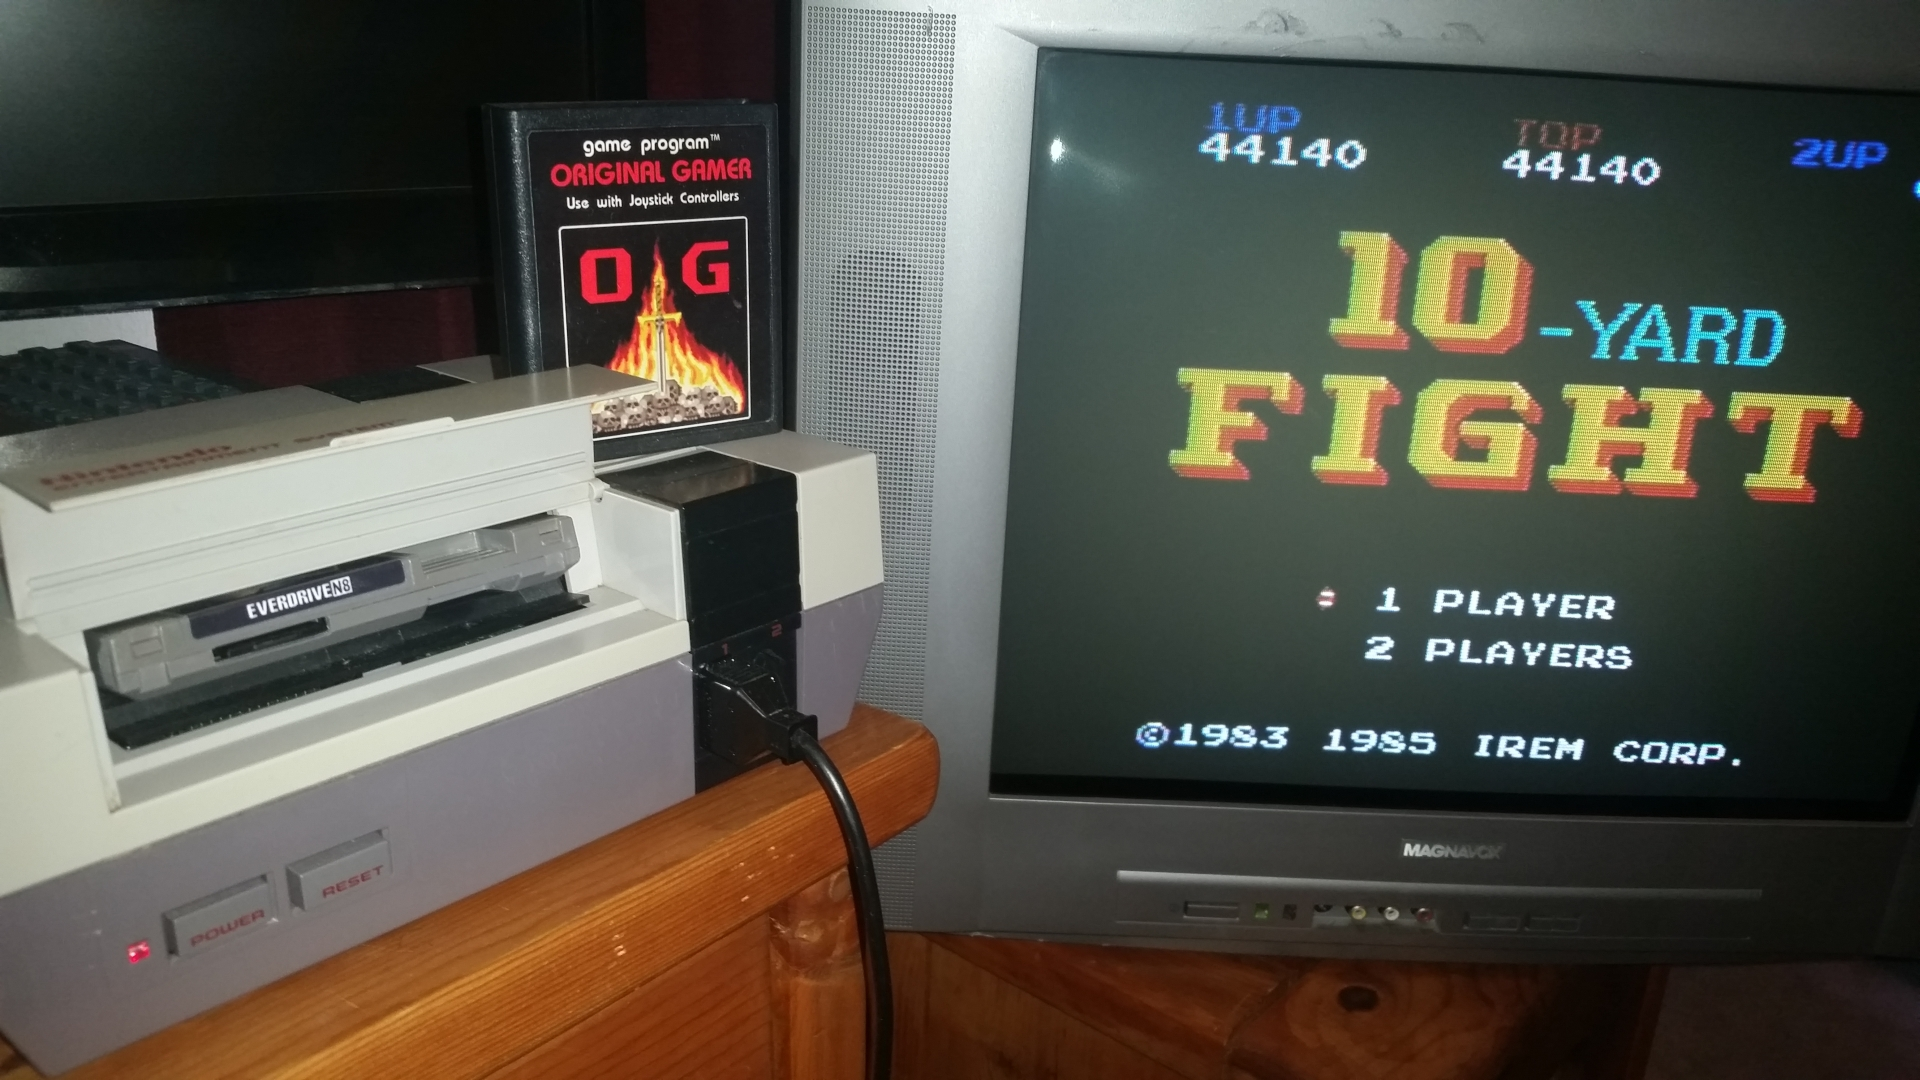 OriginalGamer: 10 Yard Fight (NES/Famicom) 44,140 points on 2016-08-26 03:36:05